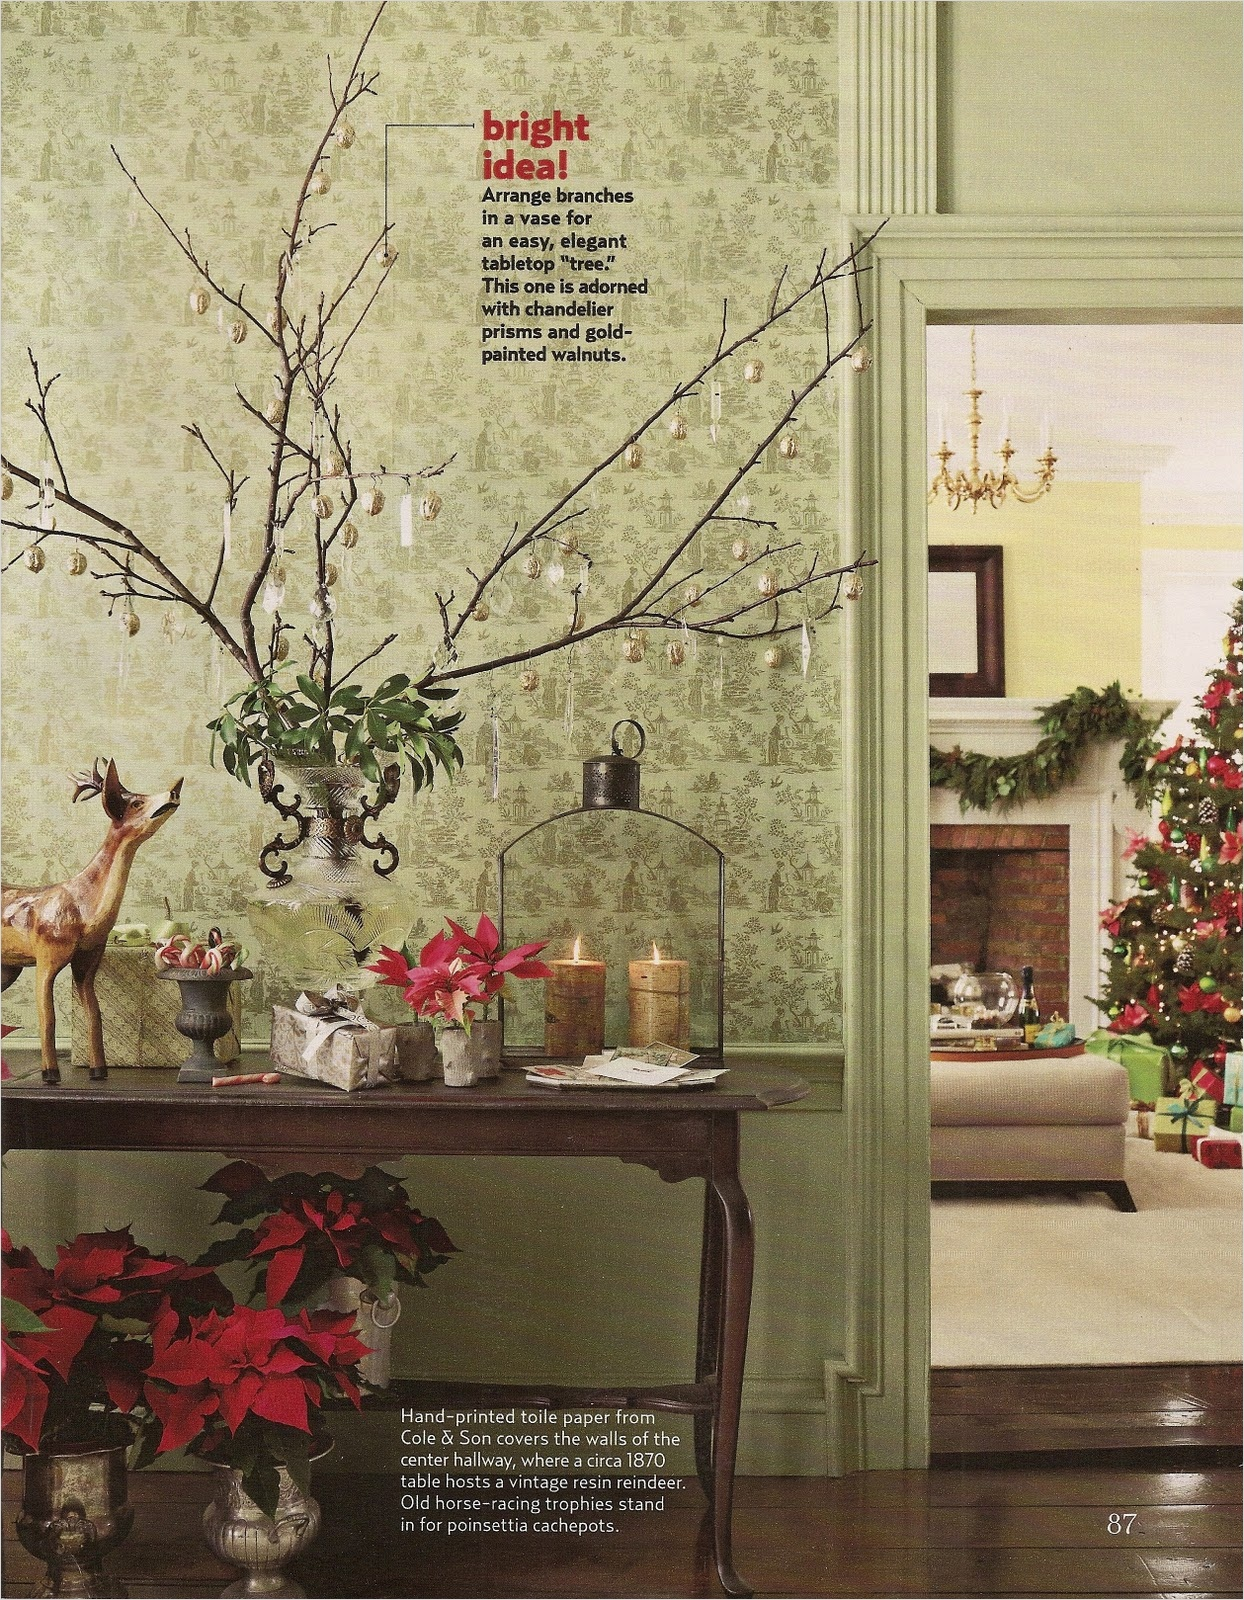 41 Amazing Country Christmas Decorating Ideas 69 Acanthus and Acorn Branch Out with Your Holiday Decorating 2